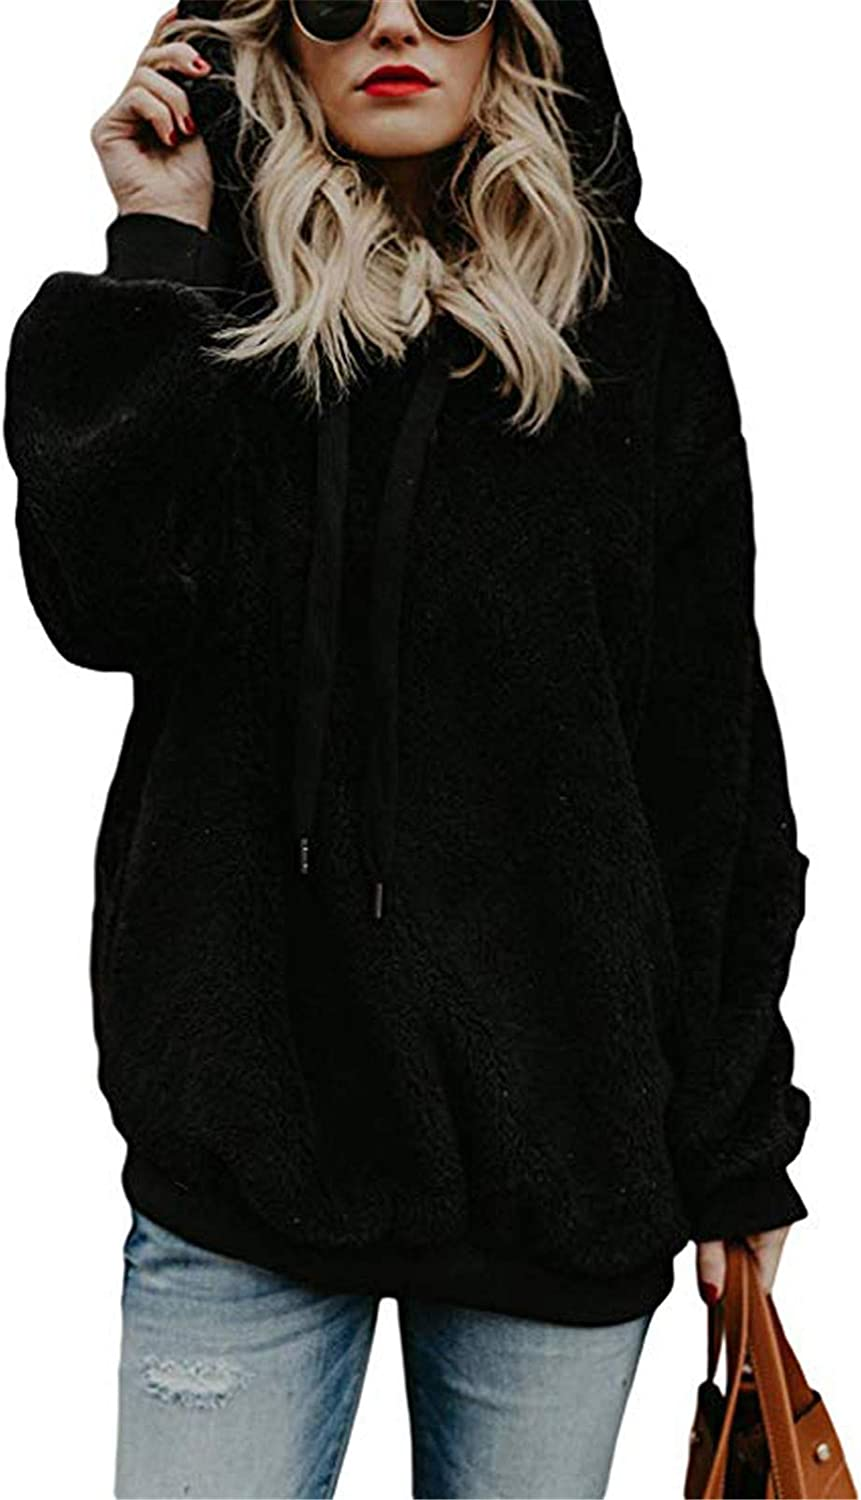 Eoailr Womens Fuzzy Casual Loose with Hooded Pockets Ranking TOP12 Sweatshirt Free Shipping Cheap Bargain Gift